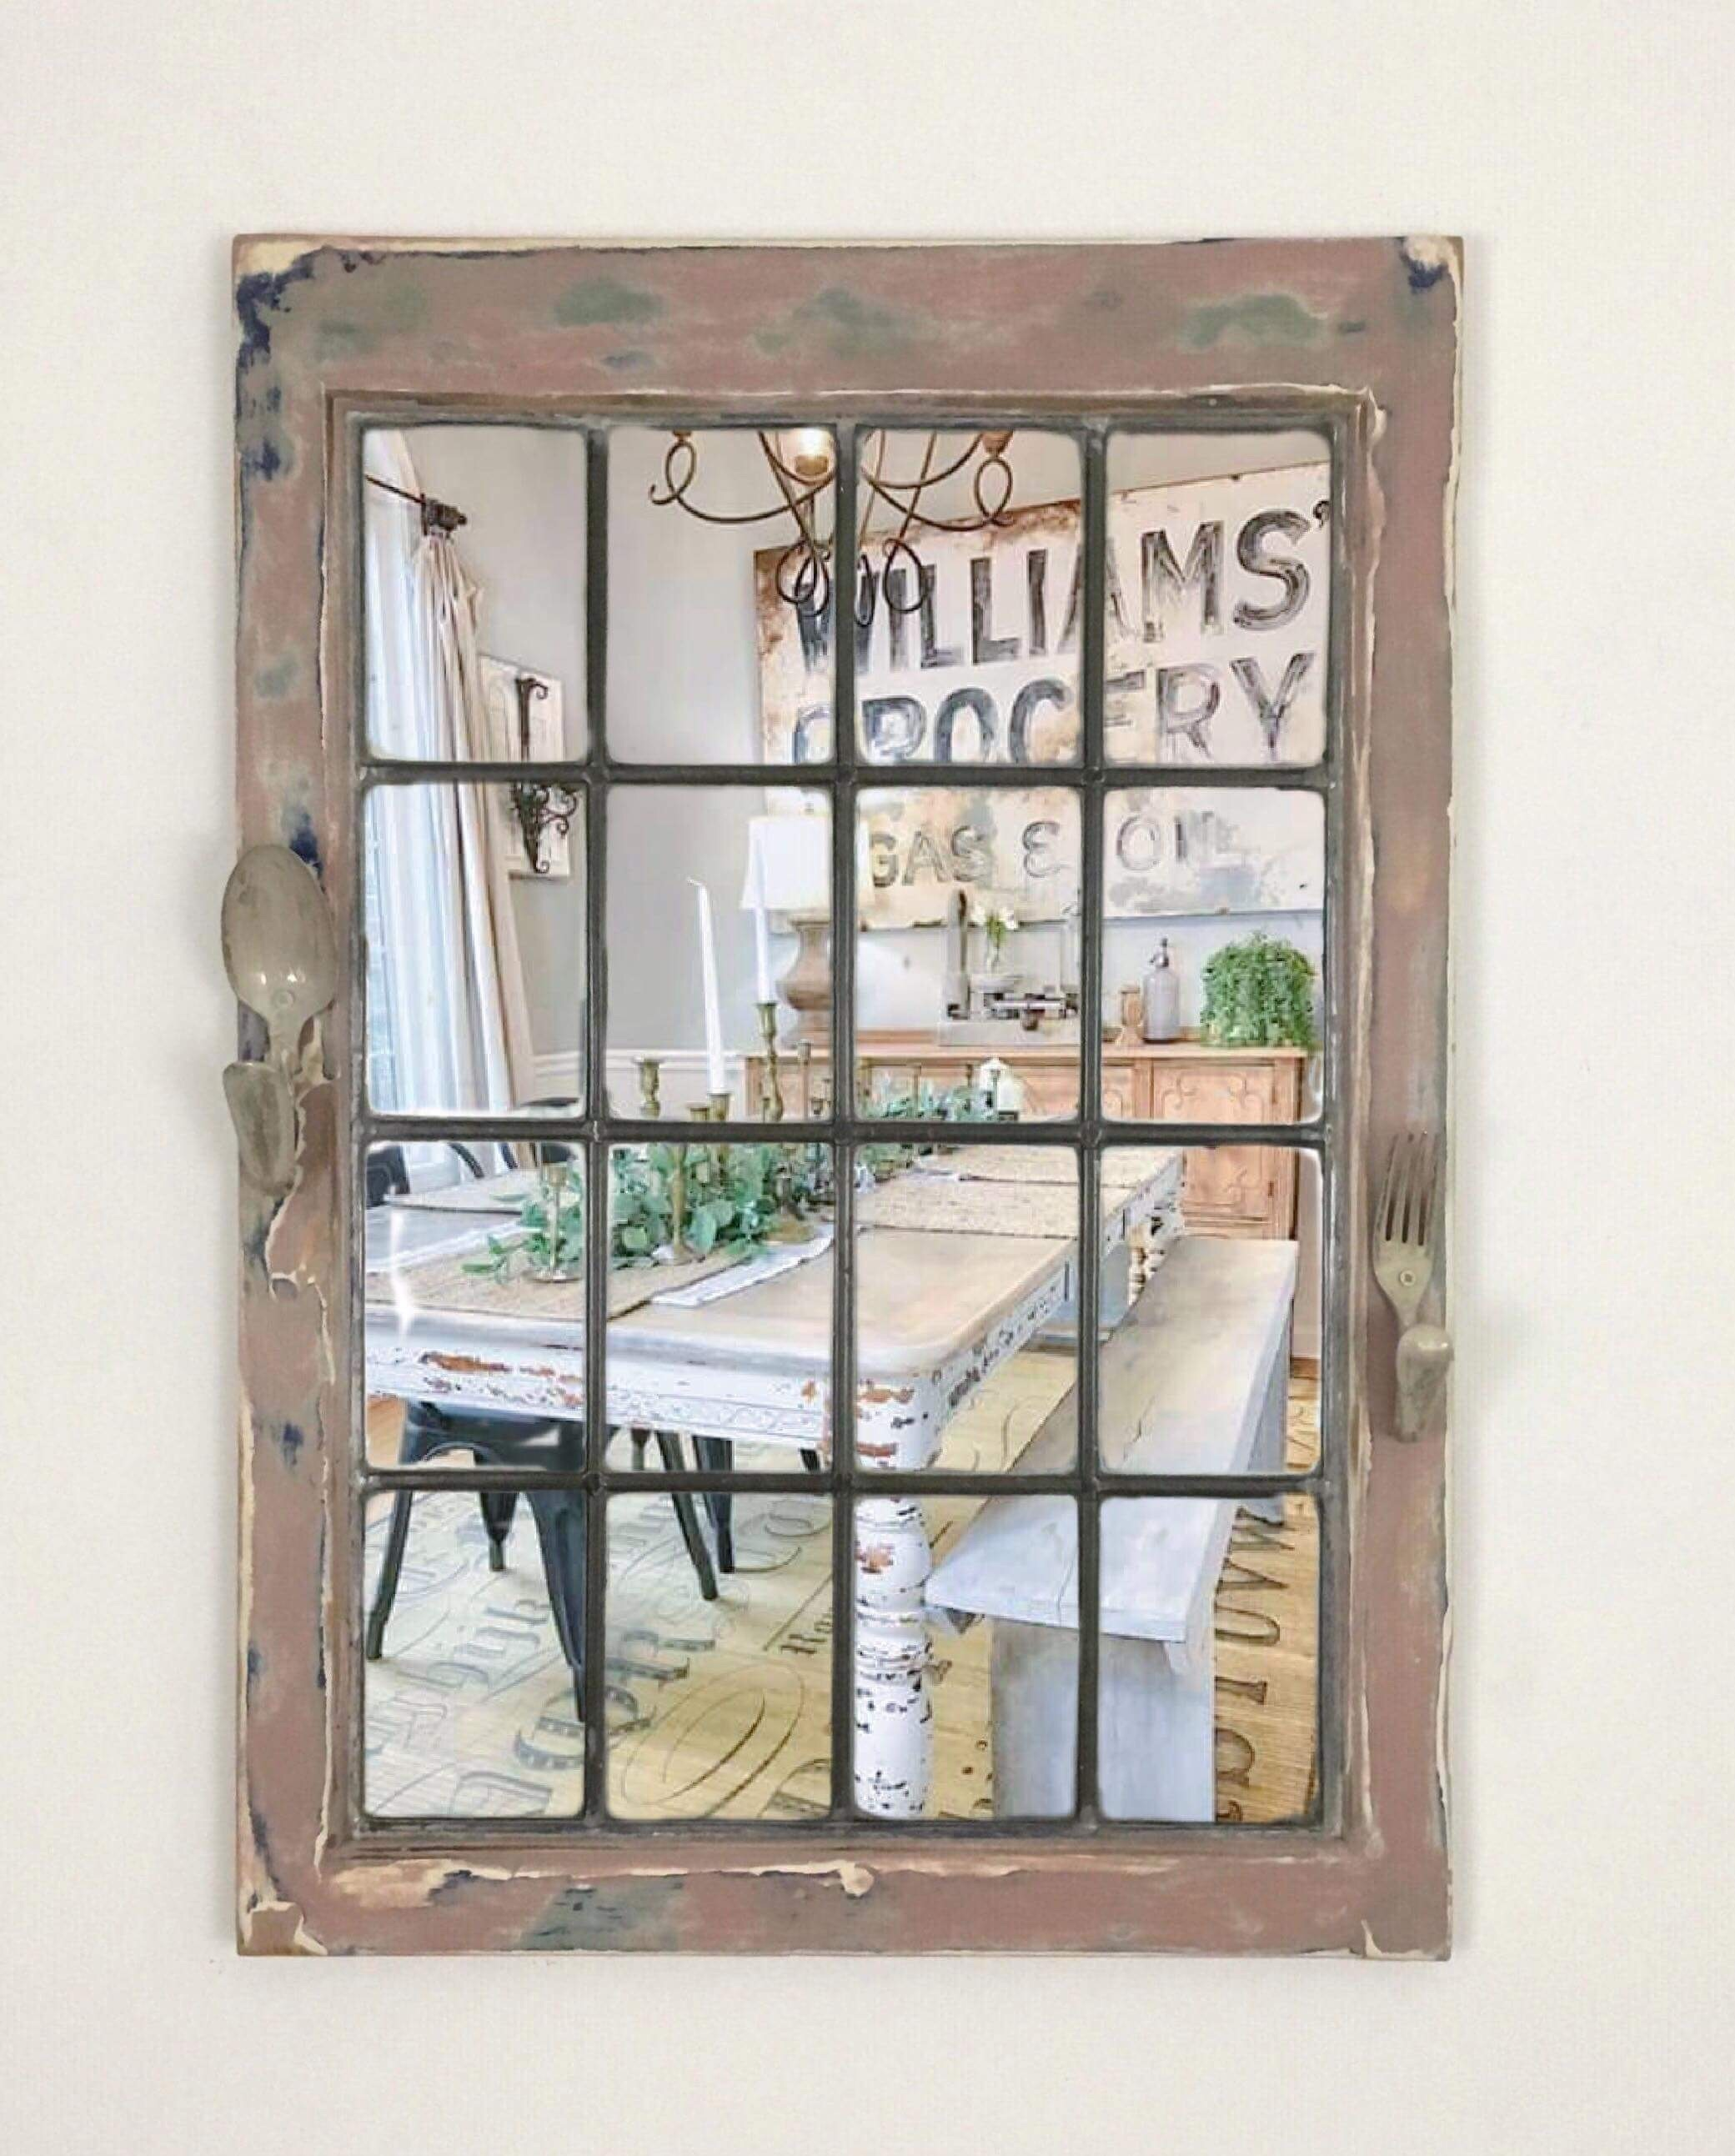 Industrial Wall Mounted Mirror Reclaimed Window Mirror Vintage Wall Mounted Mirror Window Mirror Wall Mirror Dining Room Mirror Hooks Vinterior